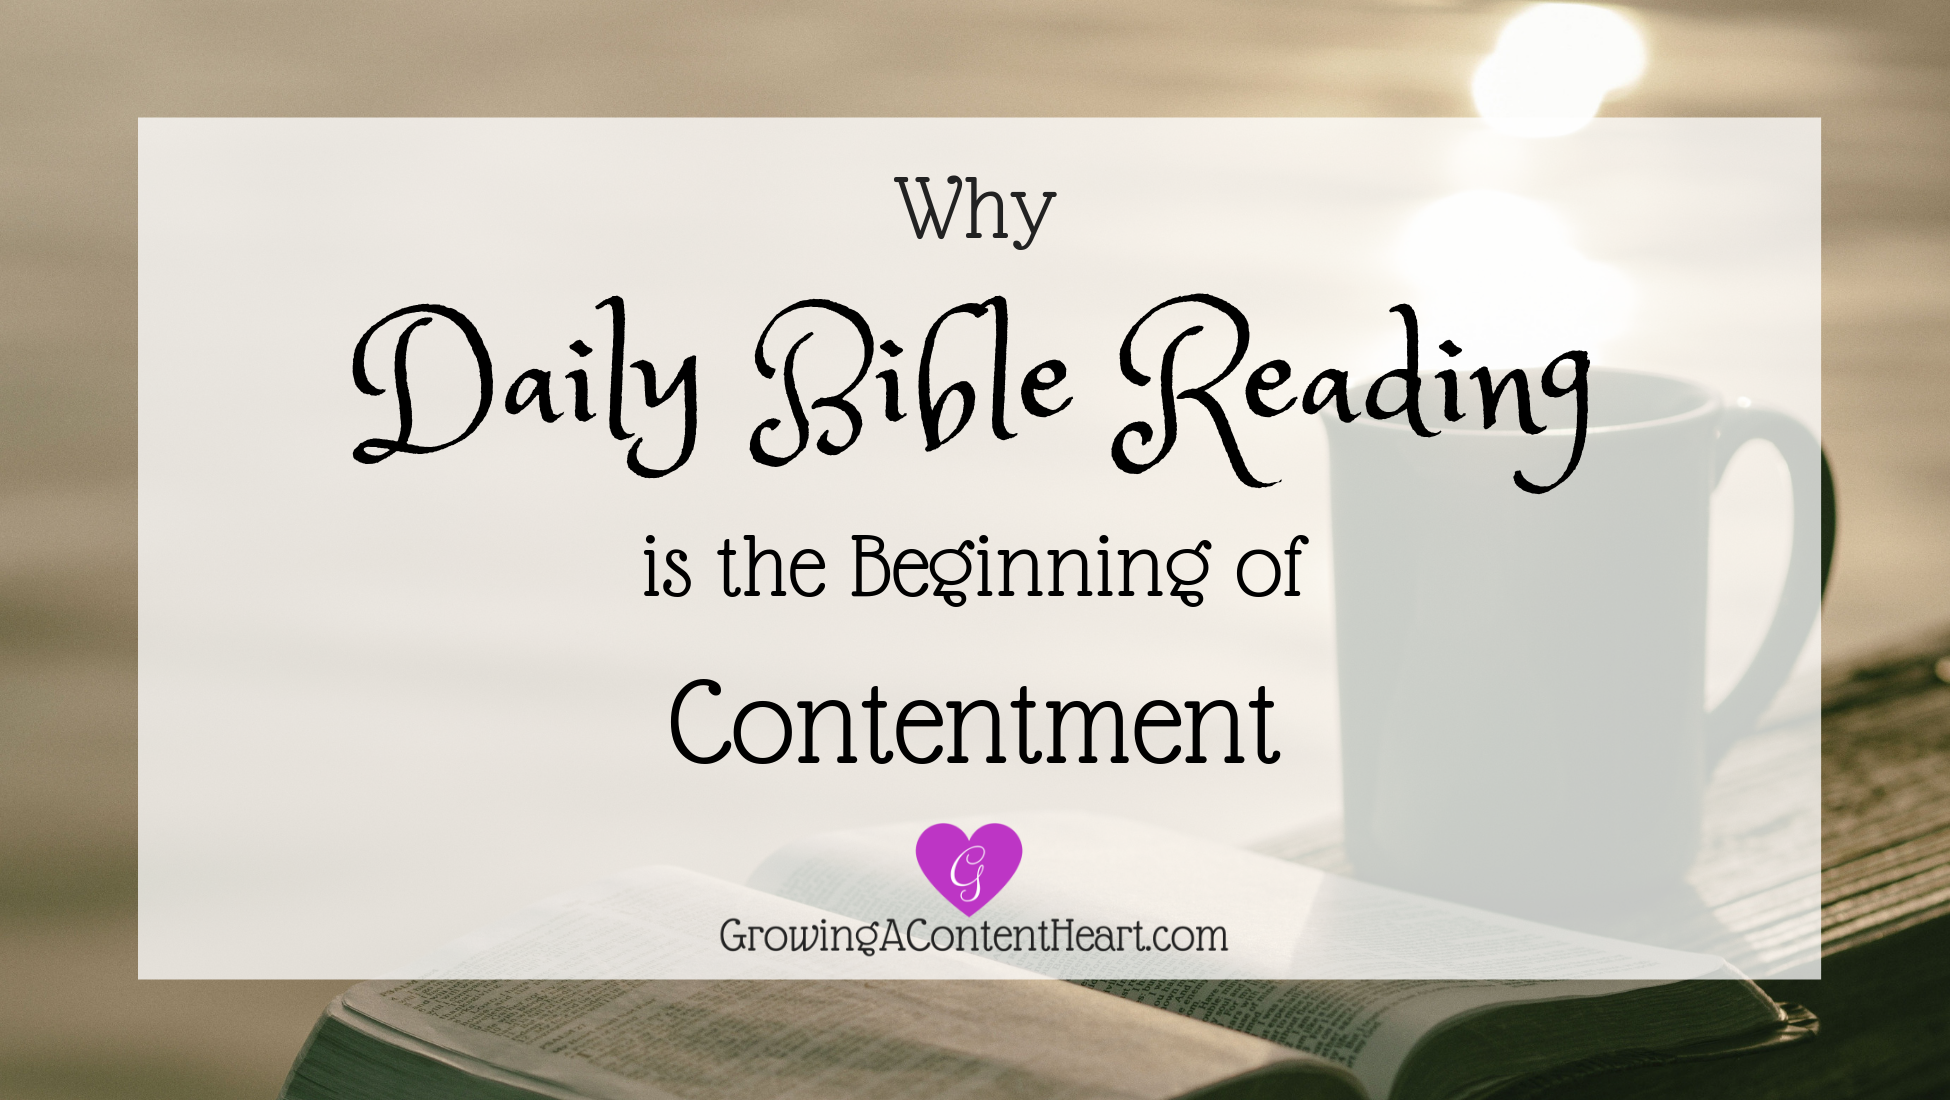 Why Daily Bible Reading is the Beginning of Contentment - Growing a Content Heart